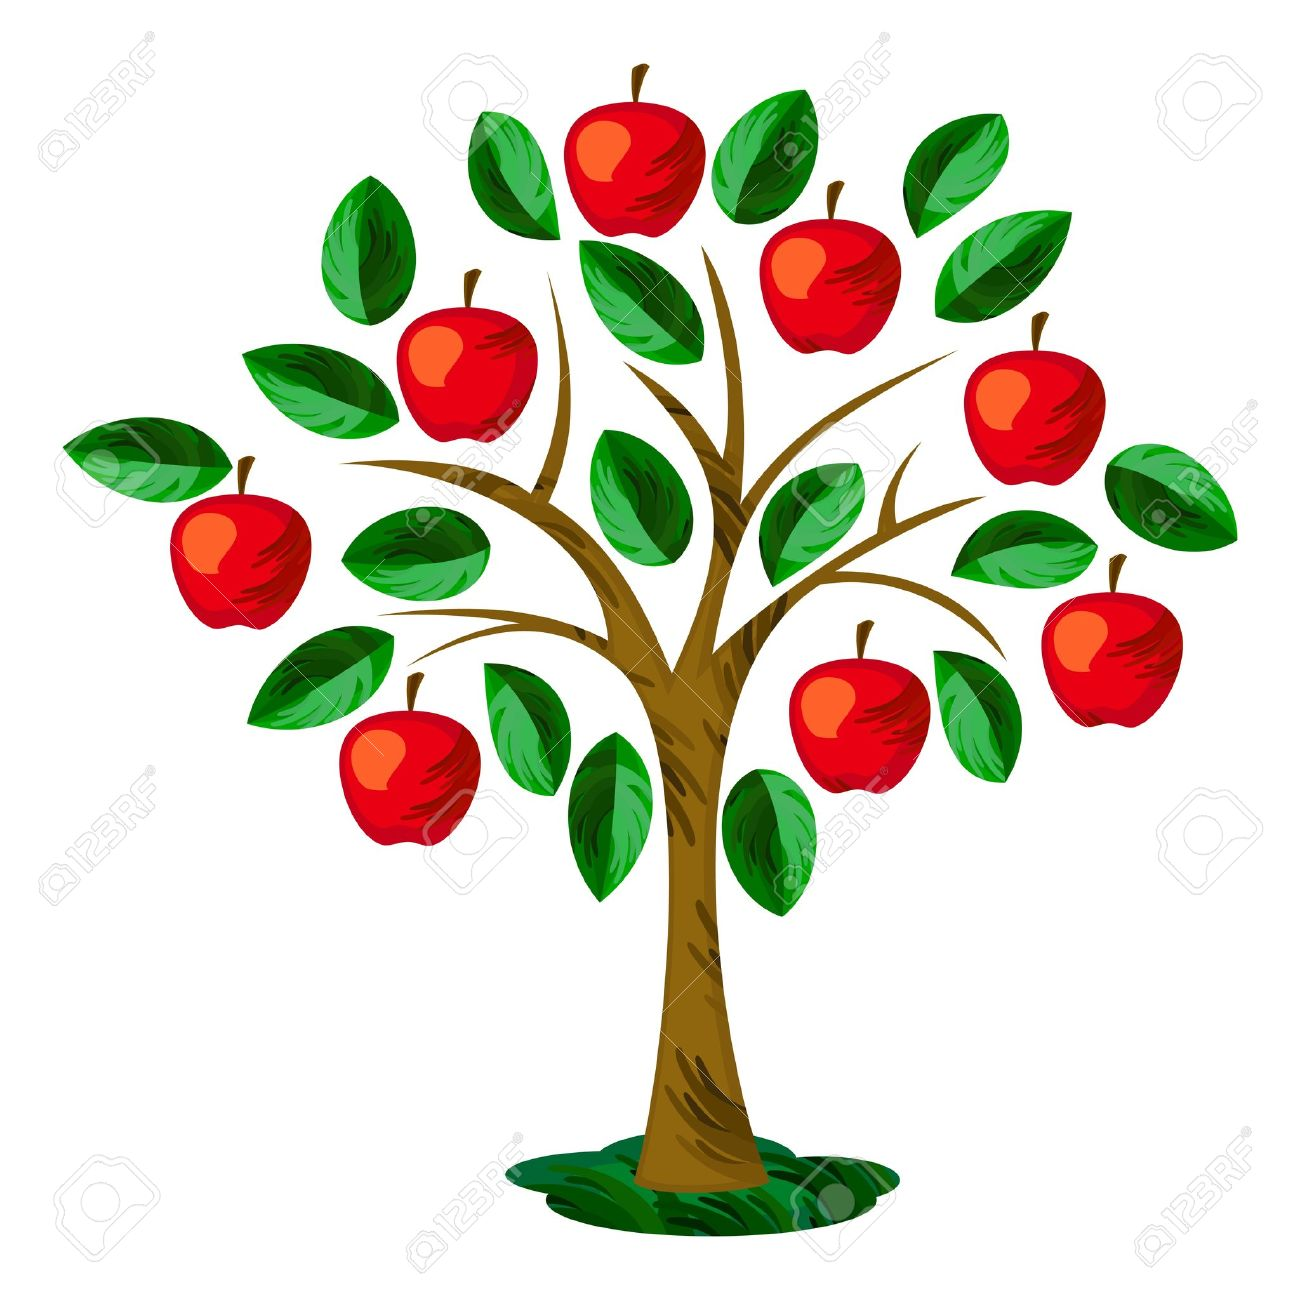 Isolated Apple Tree With Leaves And Fruits Royalty Free Cliparts.